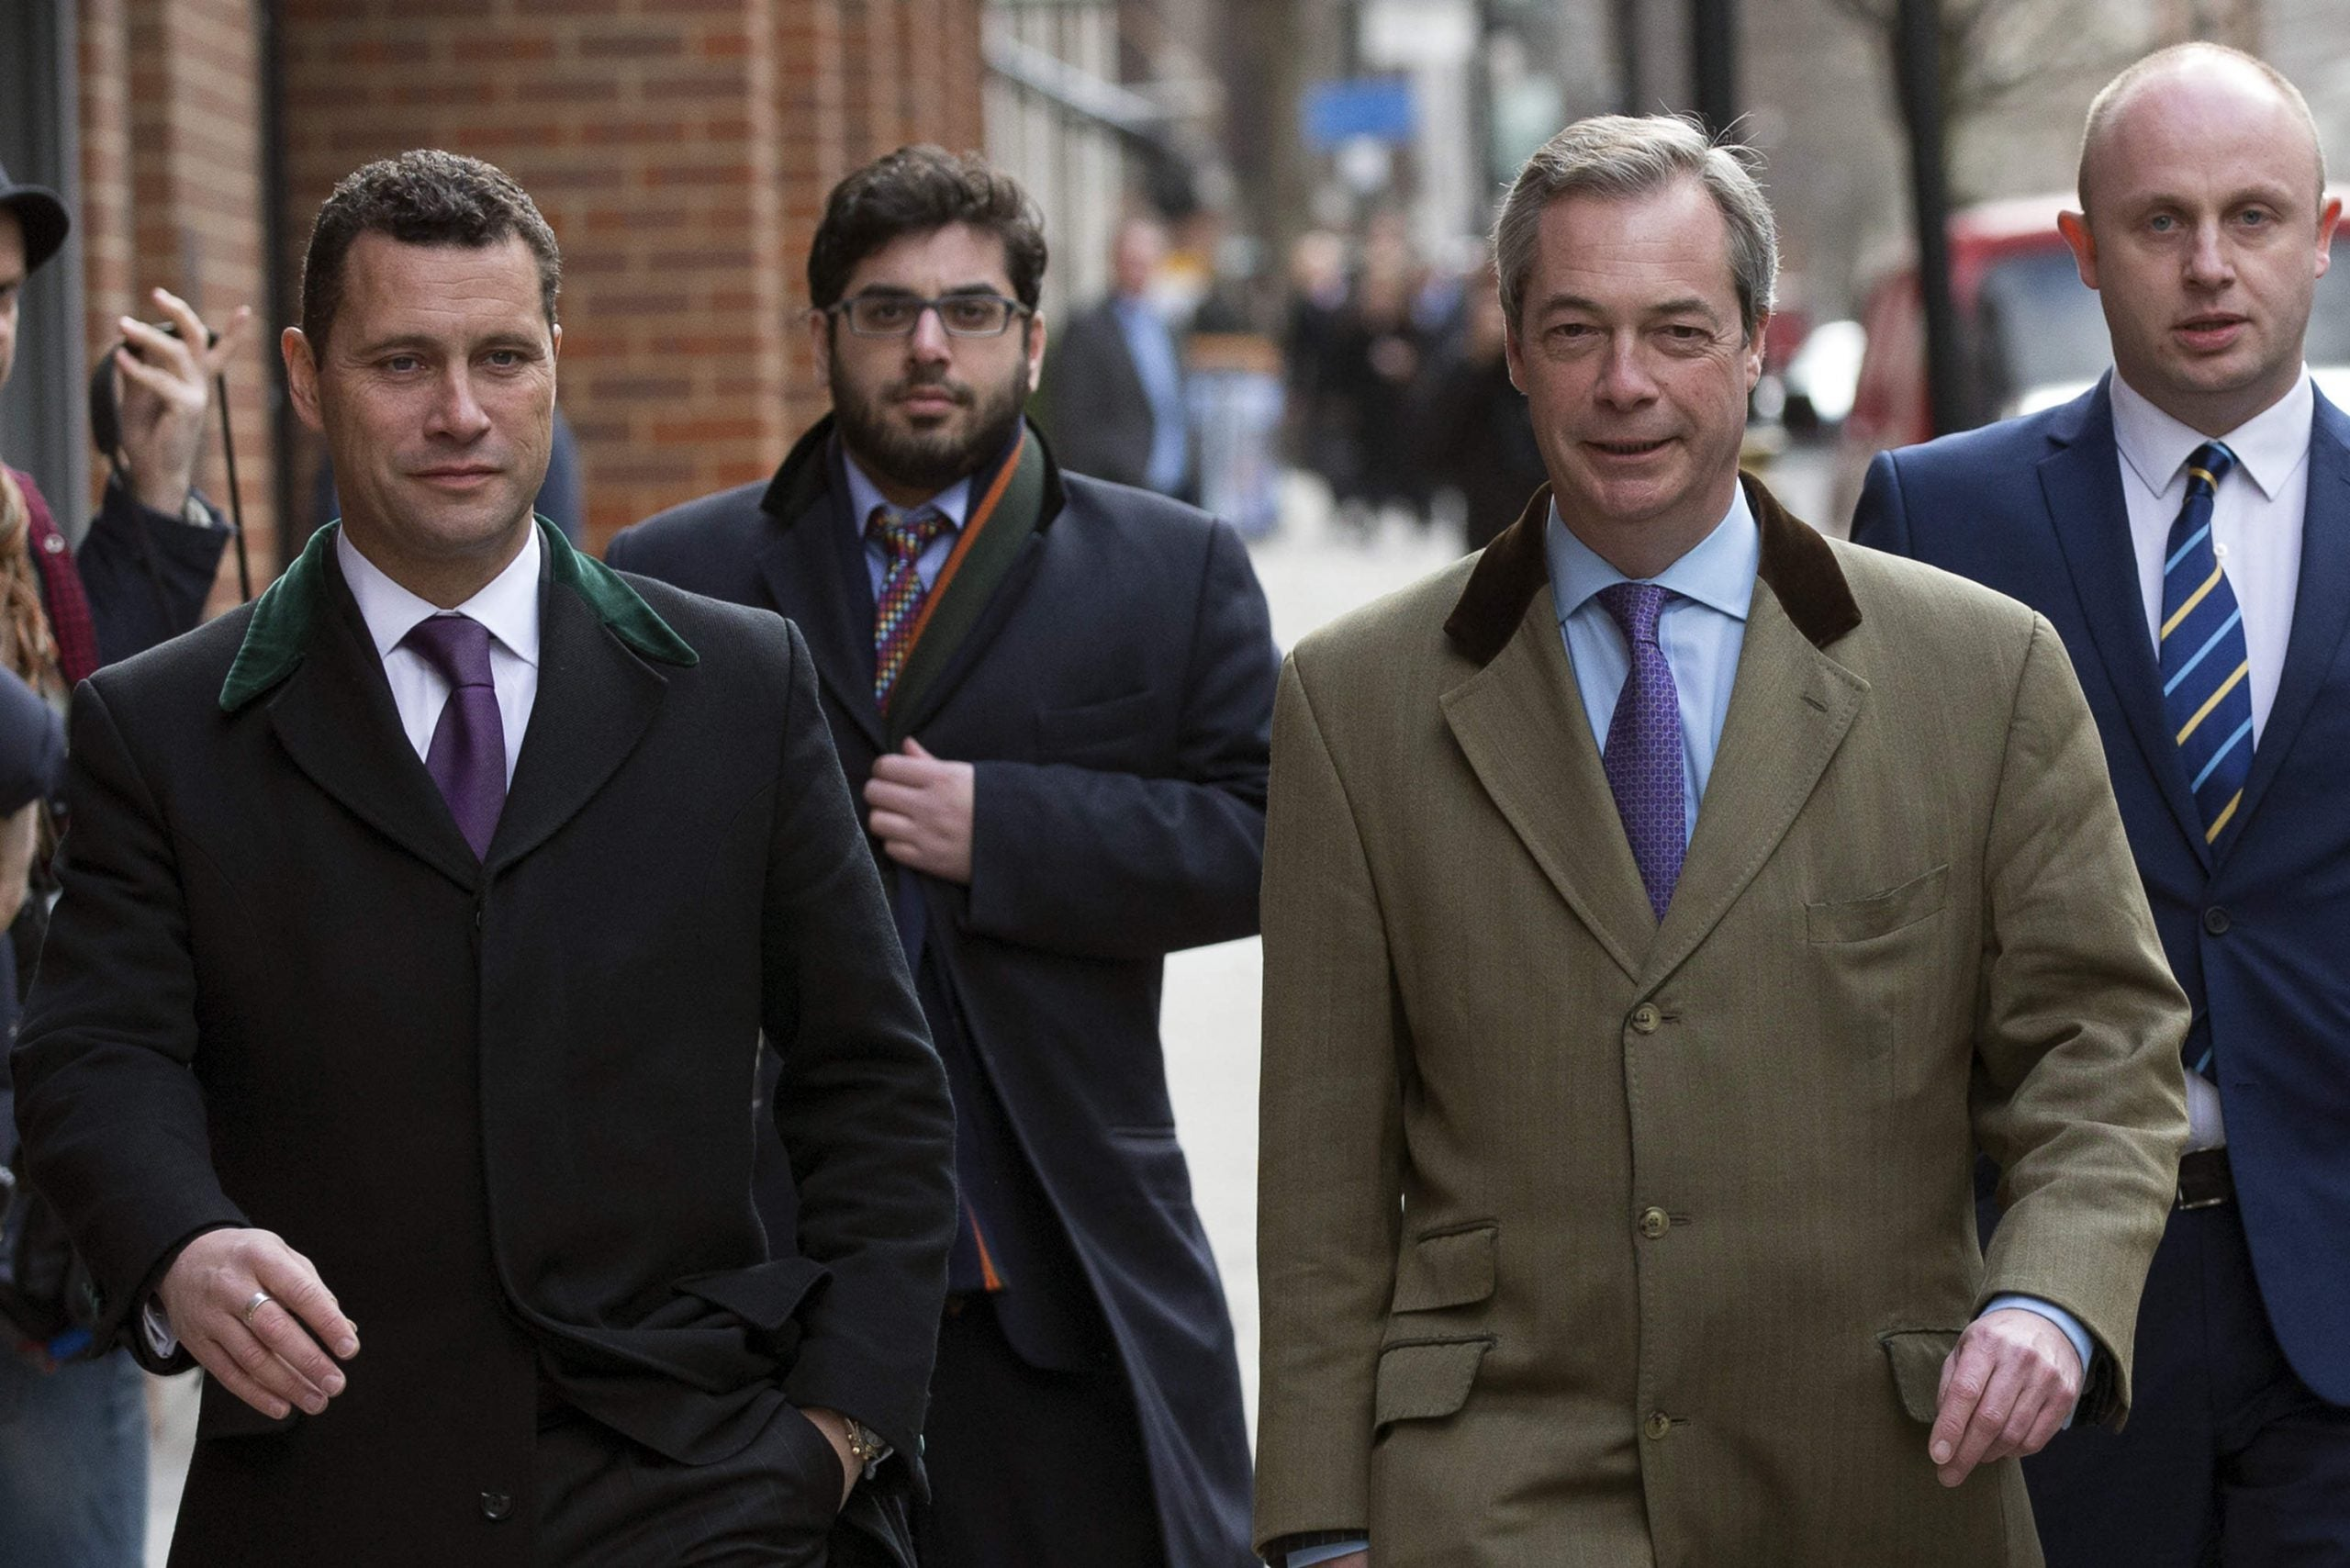 Ukip is stealthily planning a move that could shake British politics to its core